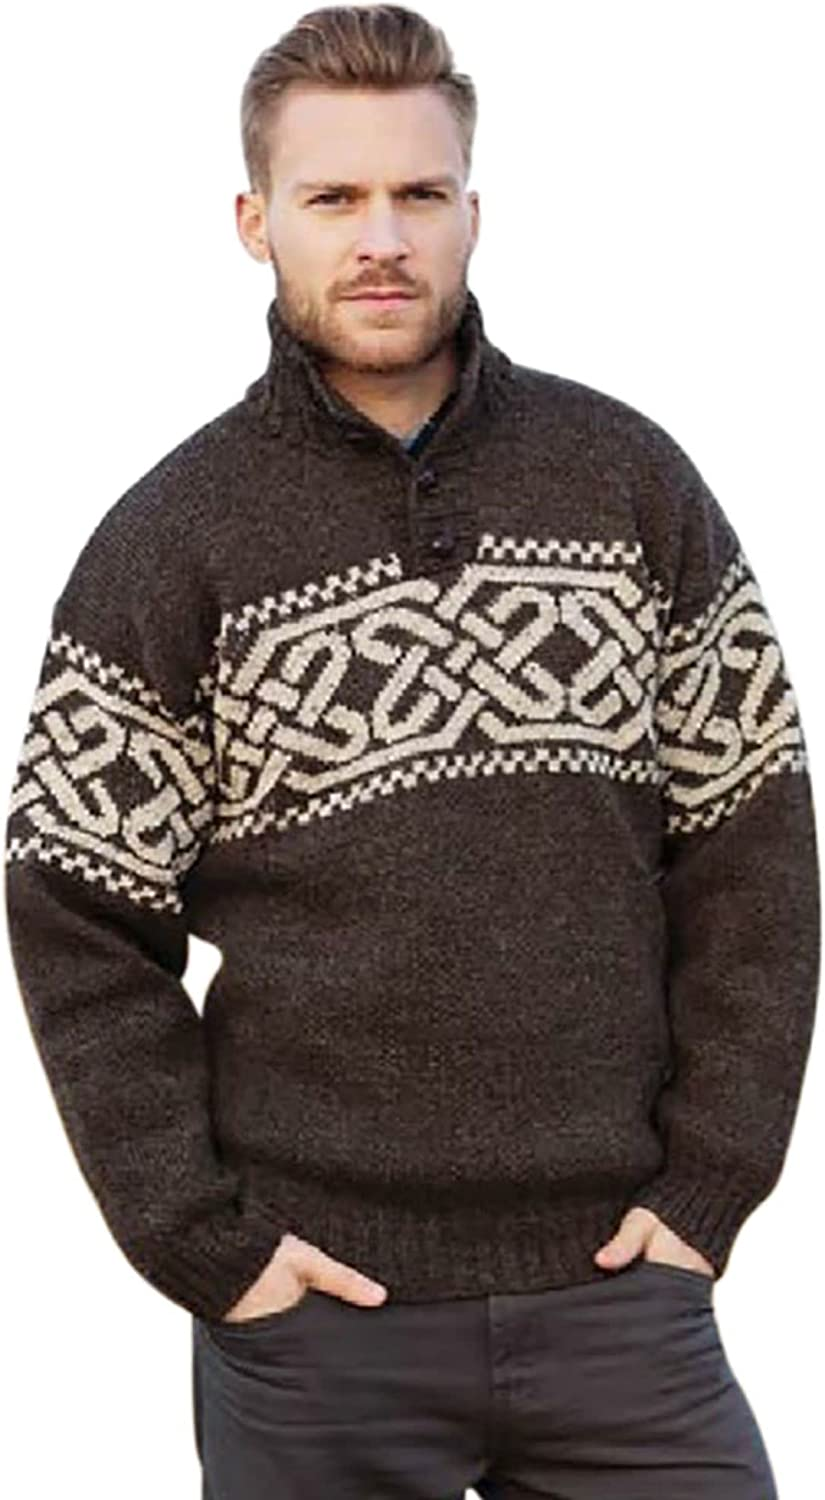 Irish Celtic Sweater for Men's Wool Fisherman Troyer Pullover Made in Ireland